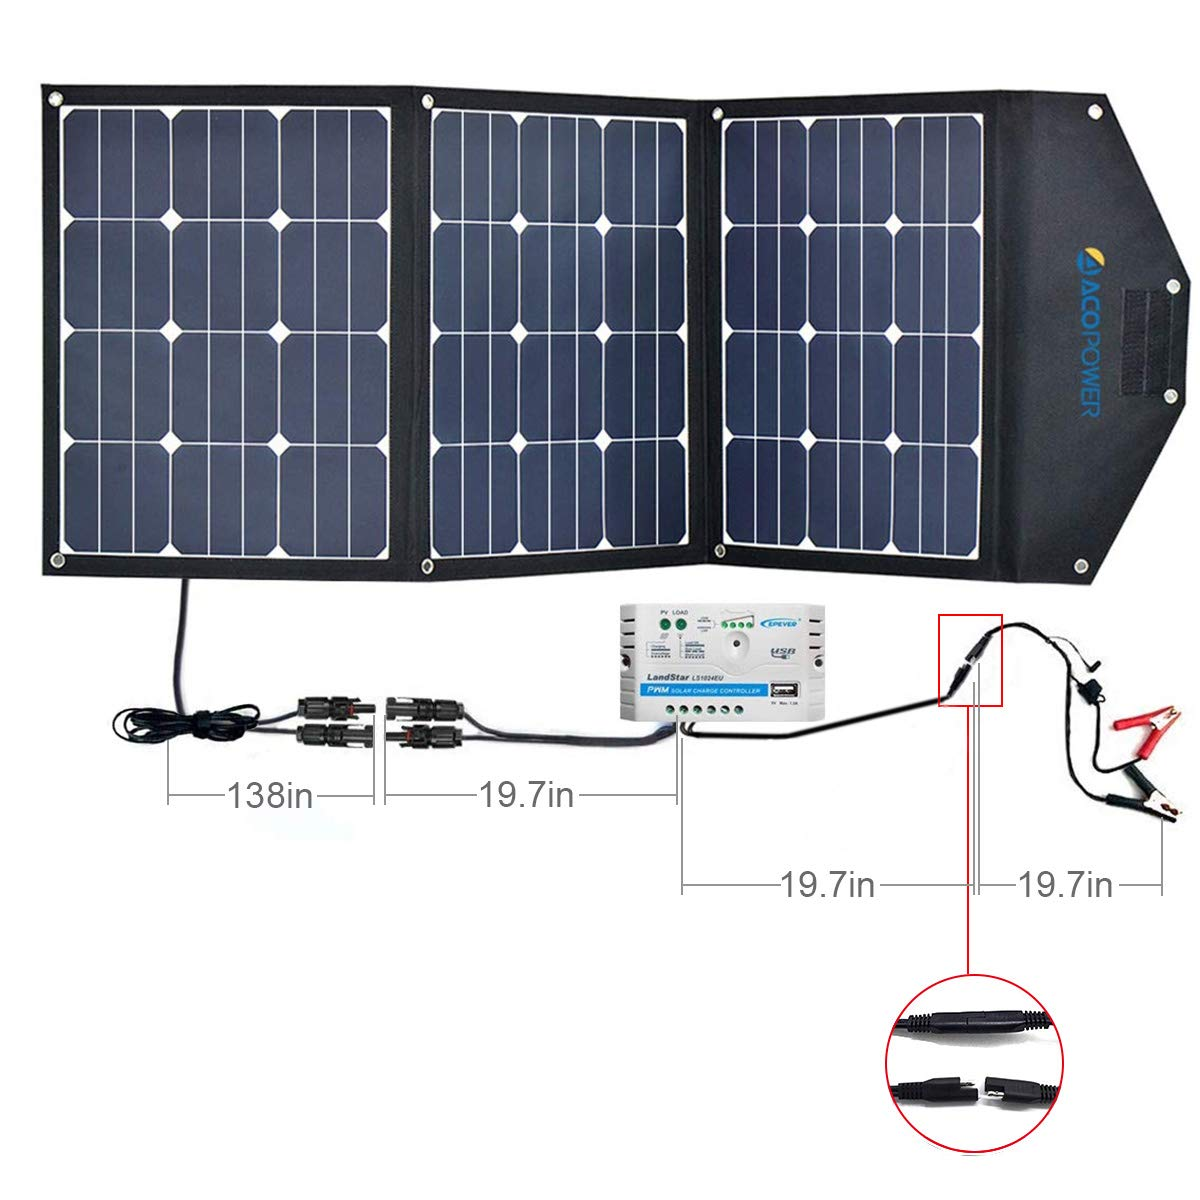 ACOPOWER HY-3x35W18V2 12V 105W Solar Panel Kit w 10A Charge Controller for both RV Camper Boat Battery and DC Devices